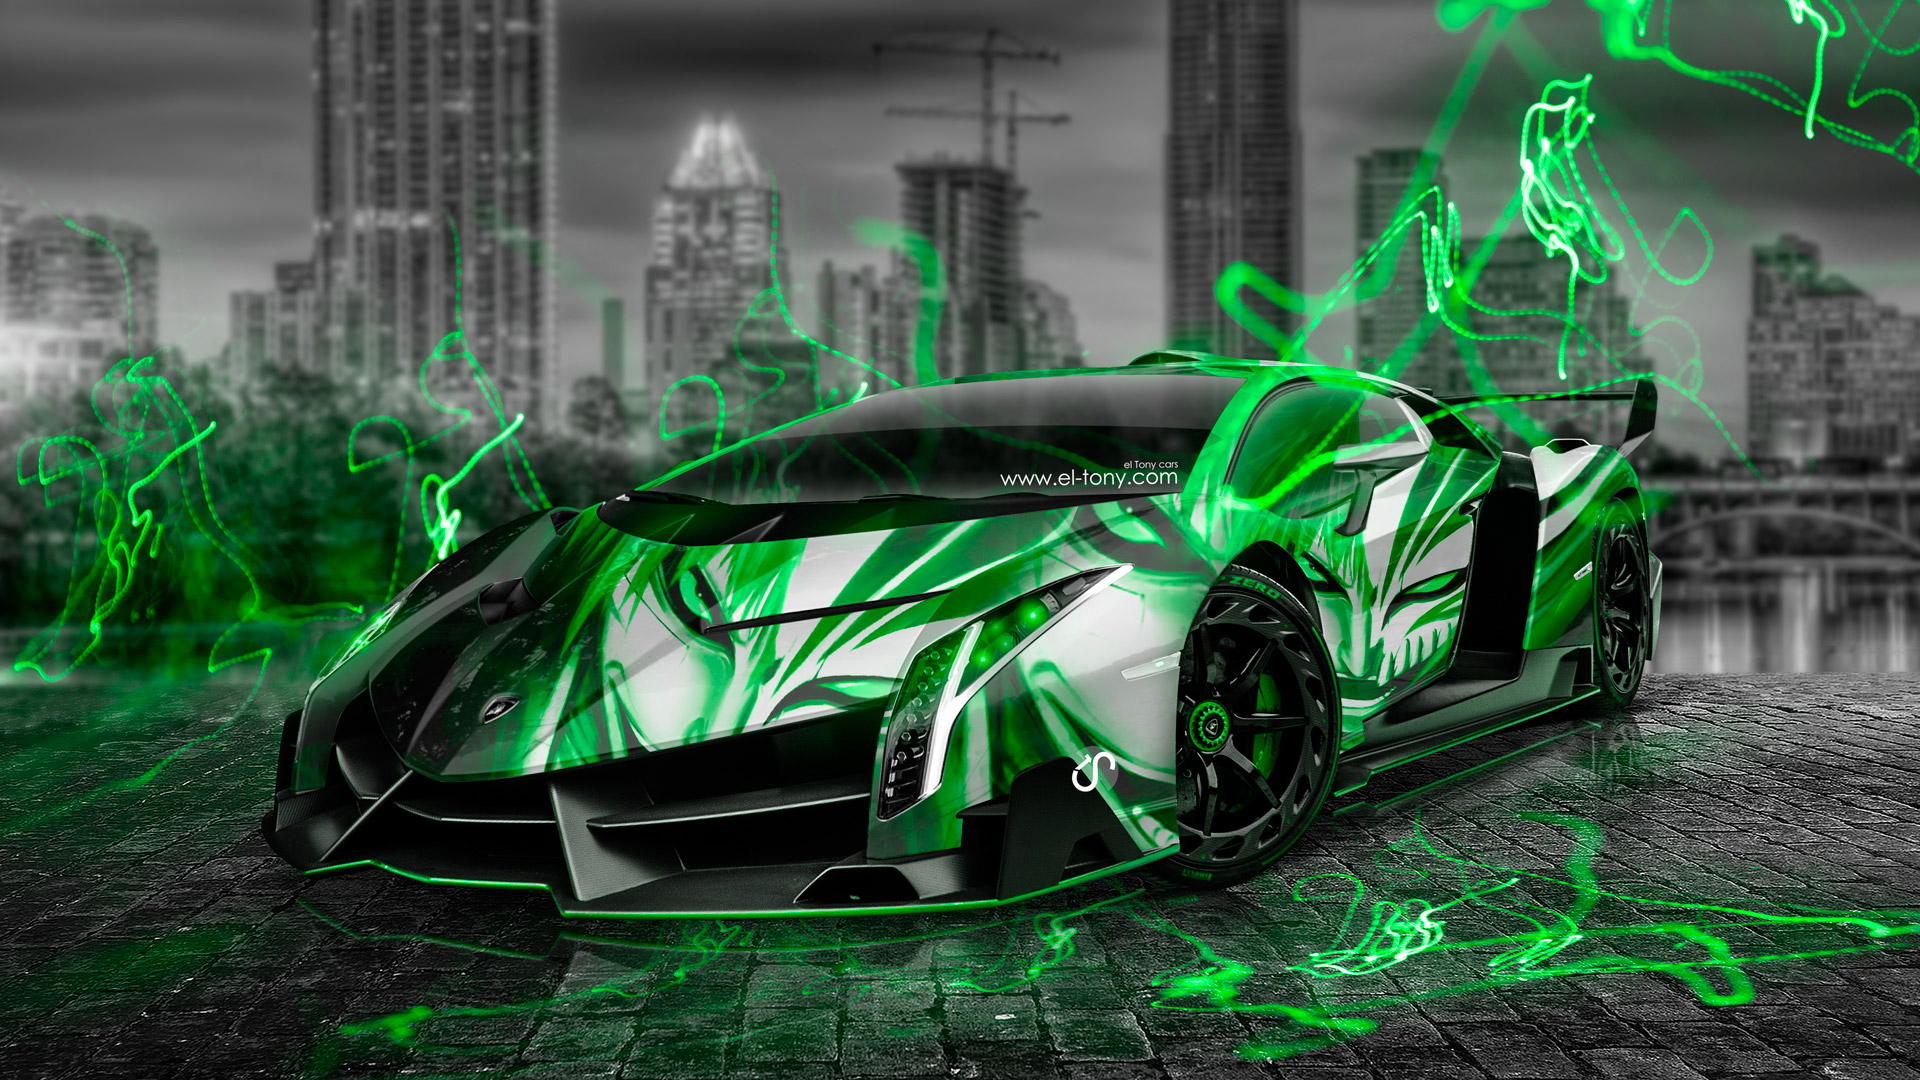 Lamborghini Veneno Anime Bleach Aerography City Car 2014